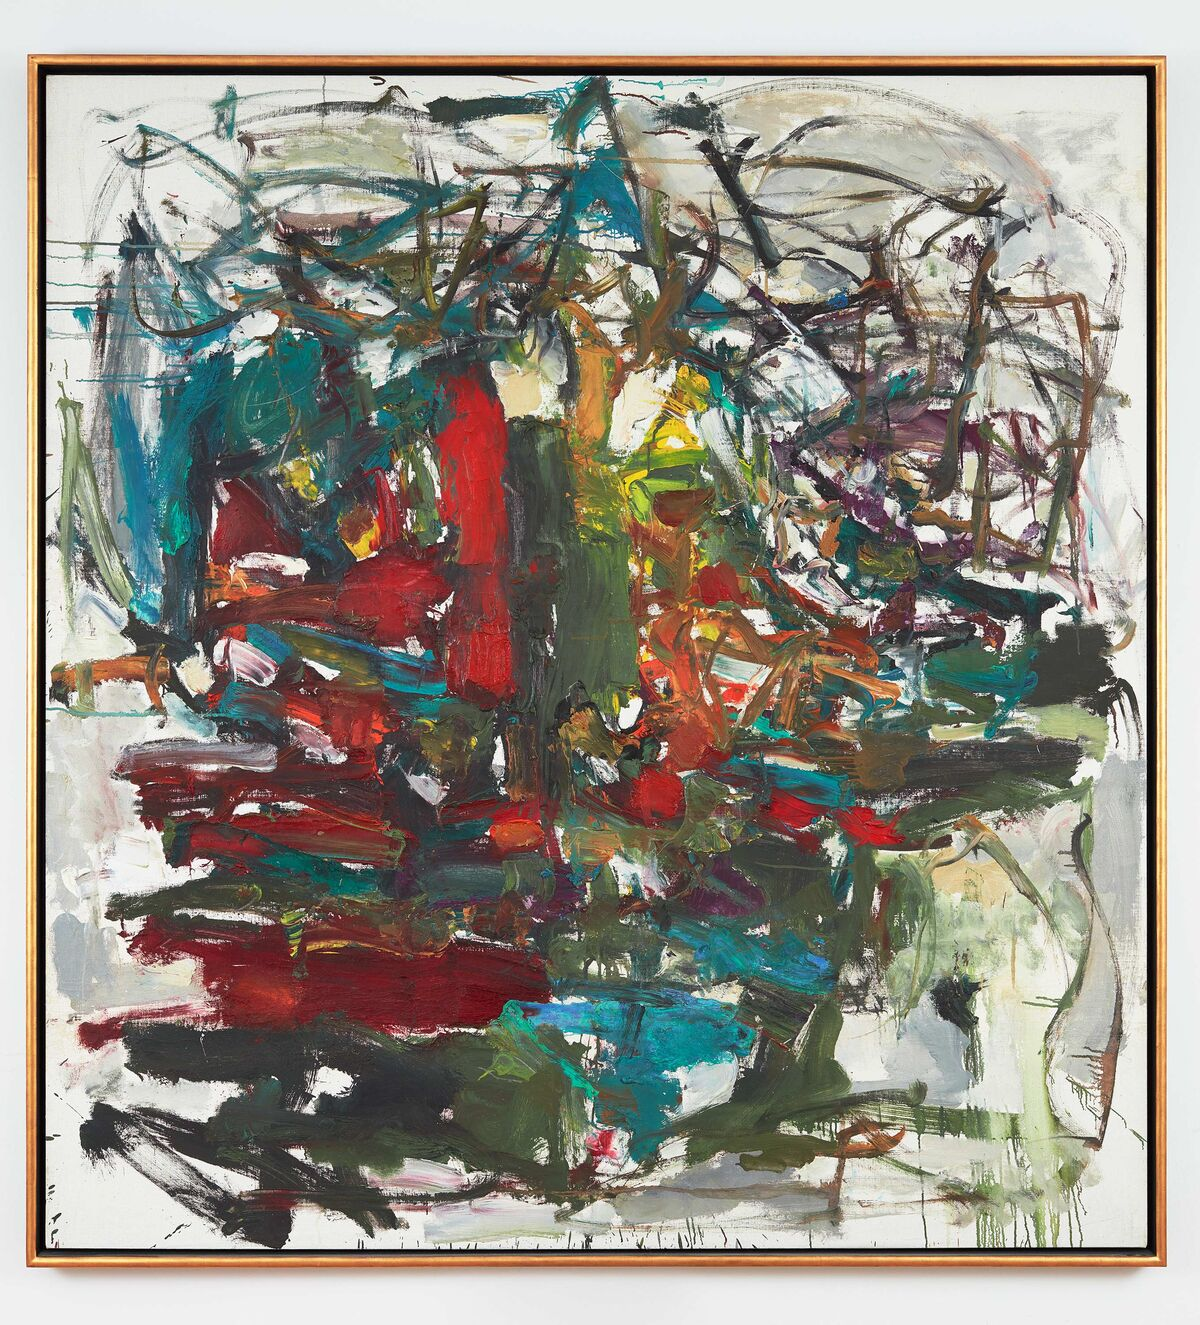 Joan Mitchell, Untitled, 1959. © Estate of Joan Mitchell. Photo by Johnna Arnold. Courtesy of Lévy Gorvy.